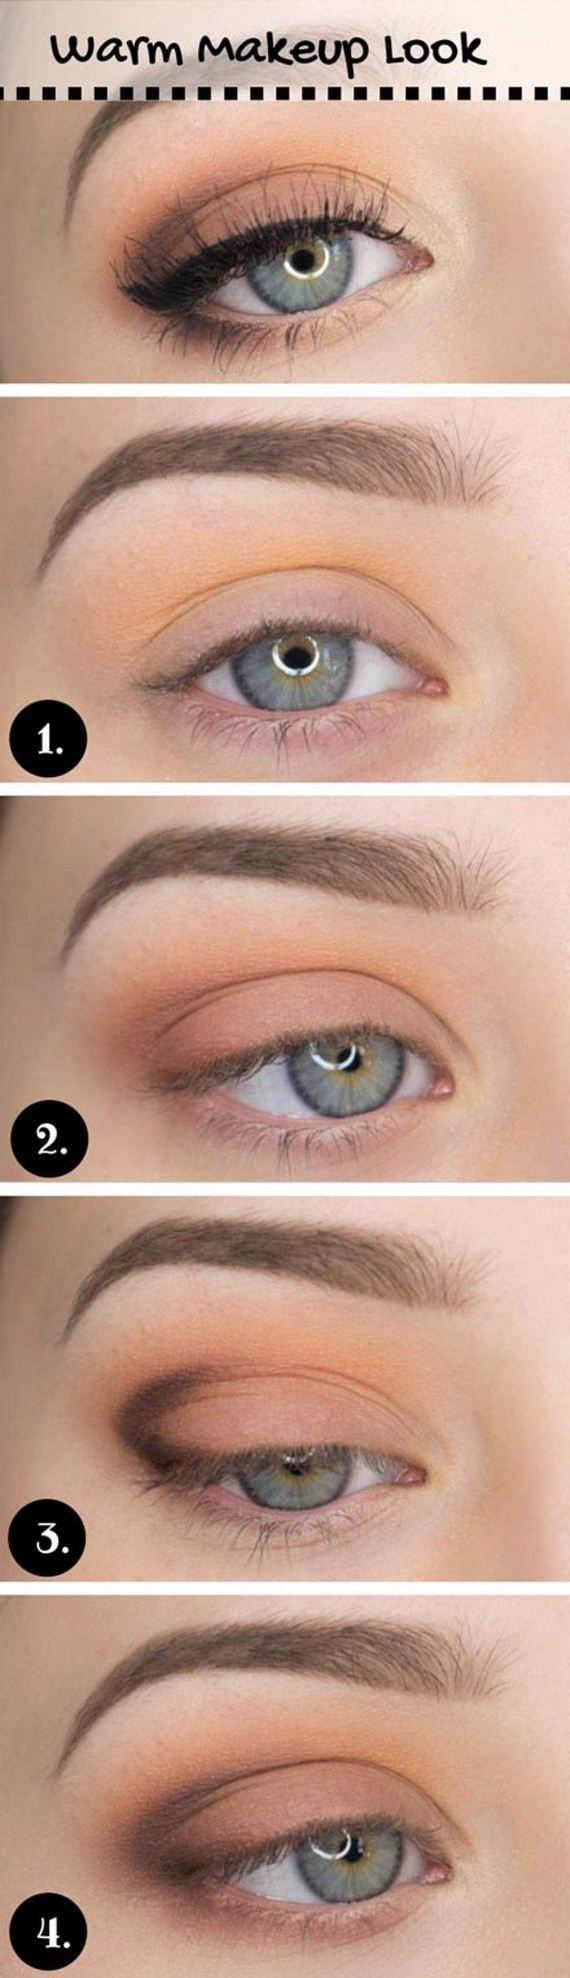 How To Apply Eyeshadow Step By Step Pictures Solution For How To